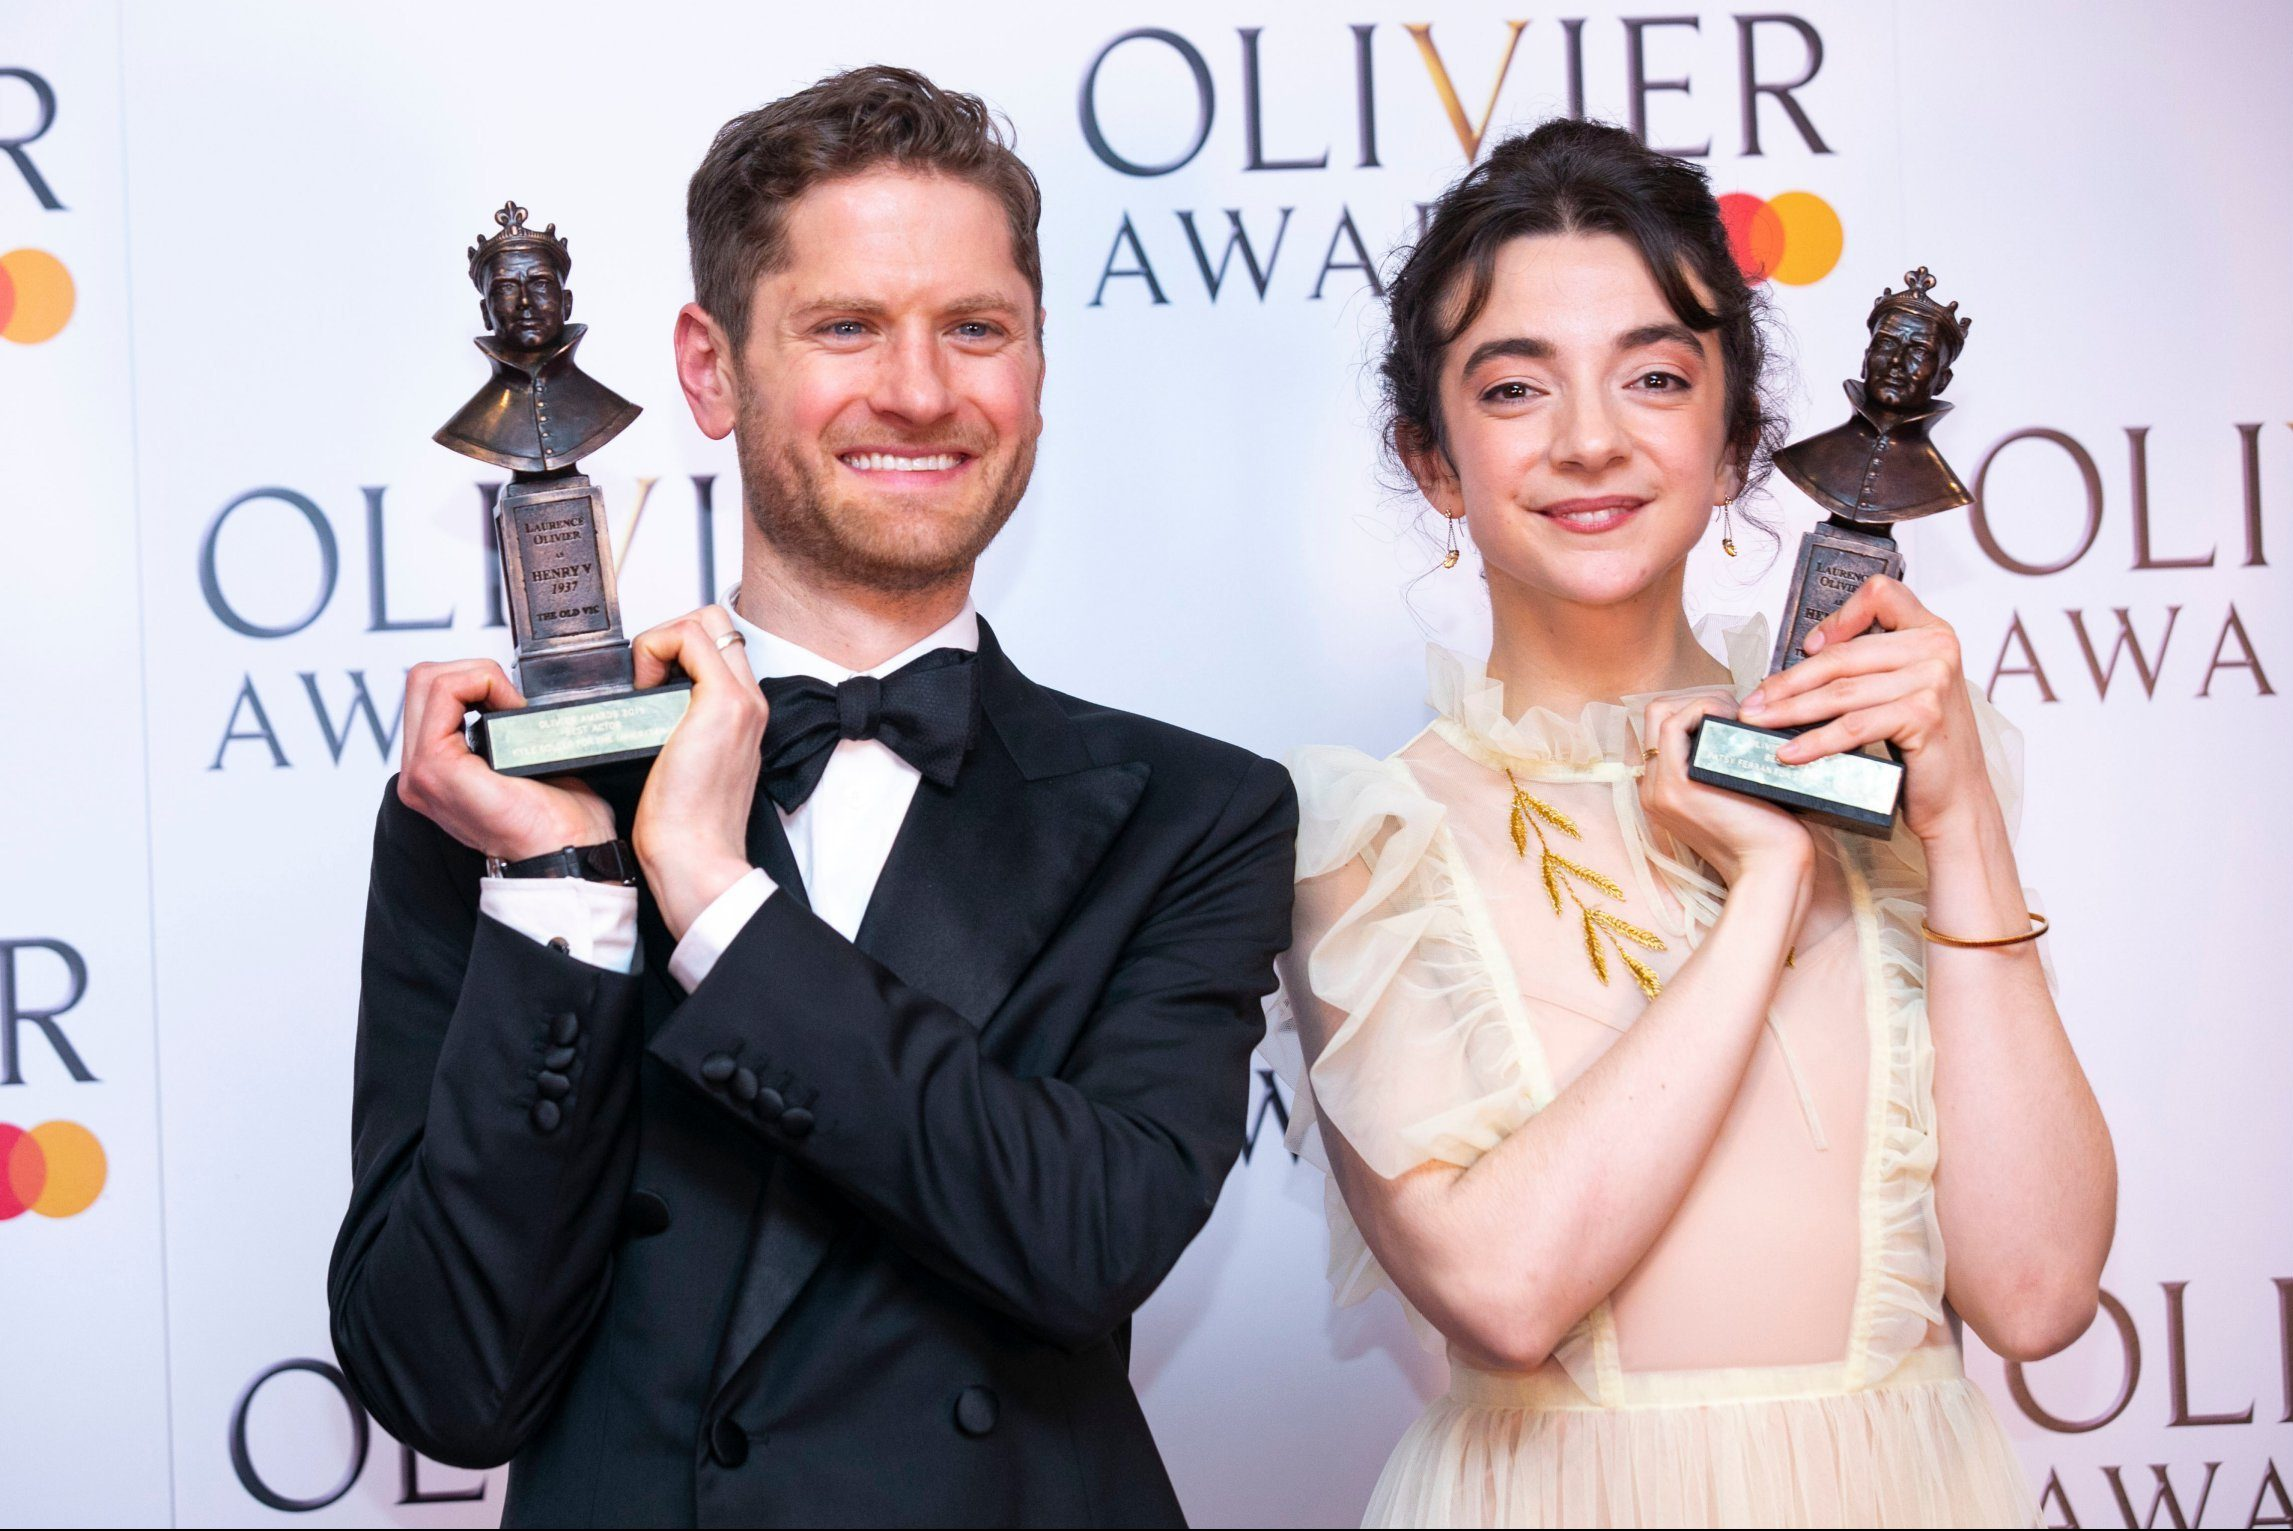 Who were the winners at the 2019 Olivier Awards?